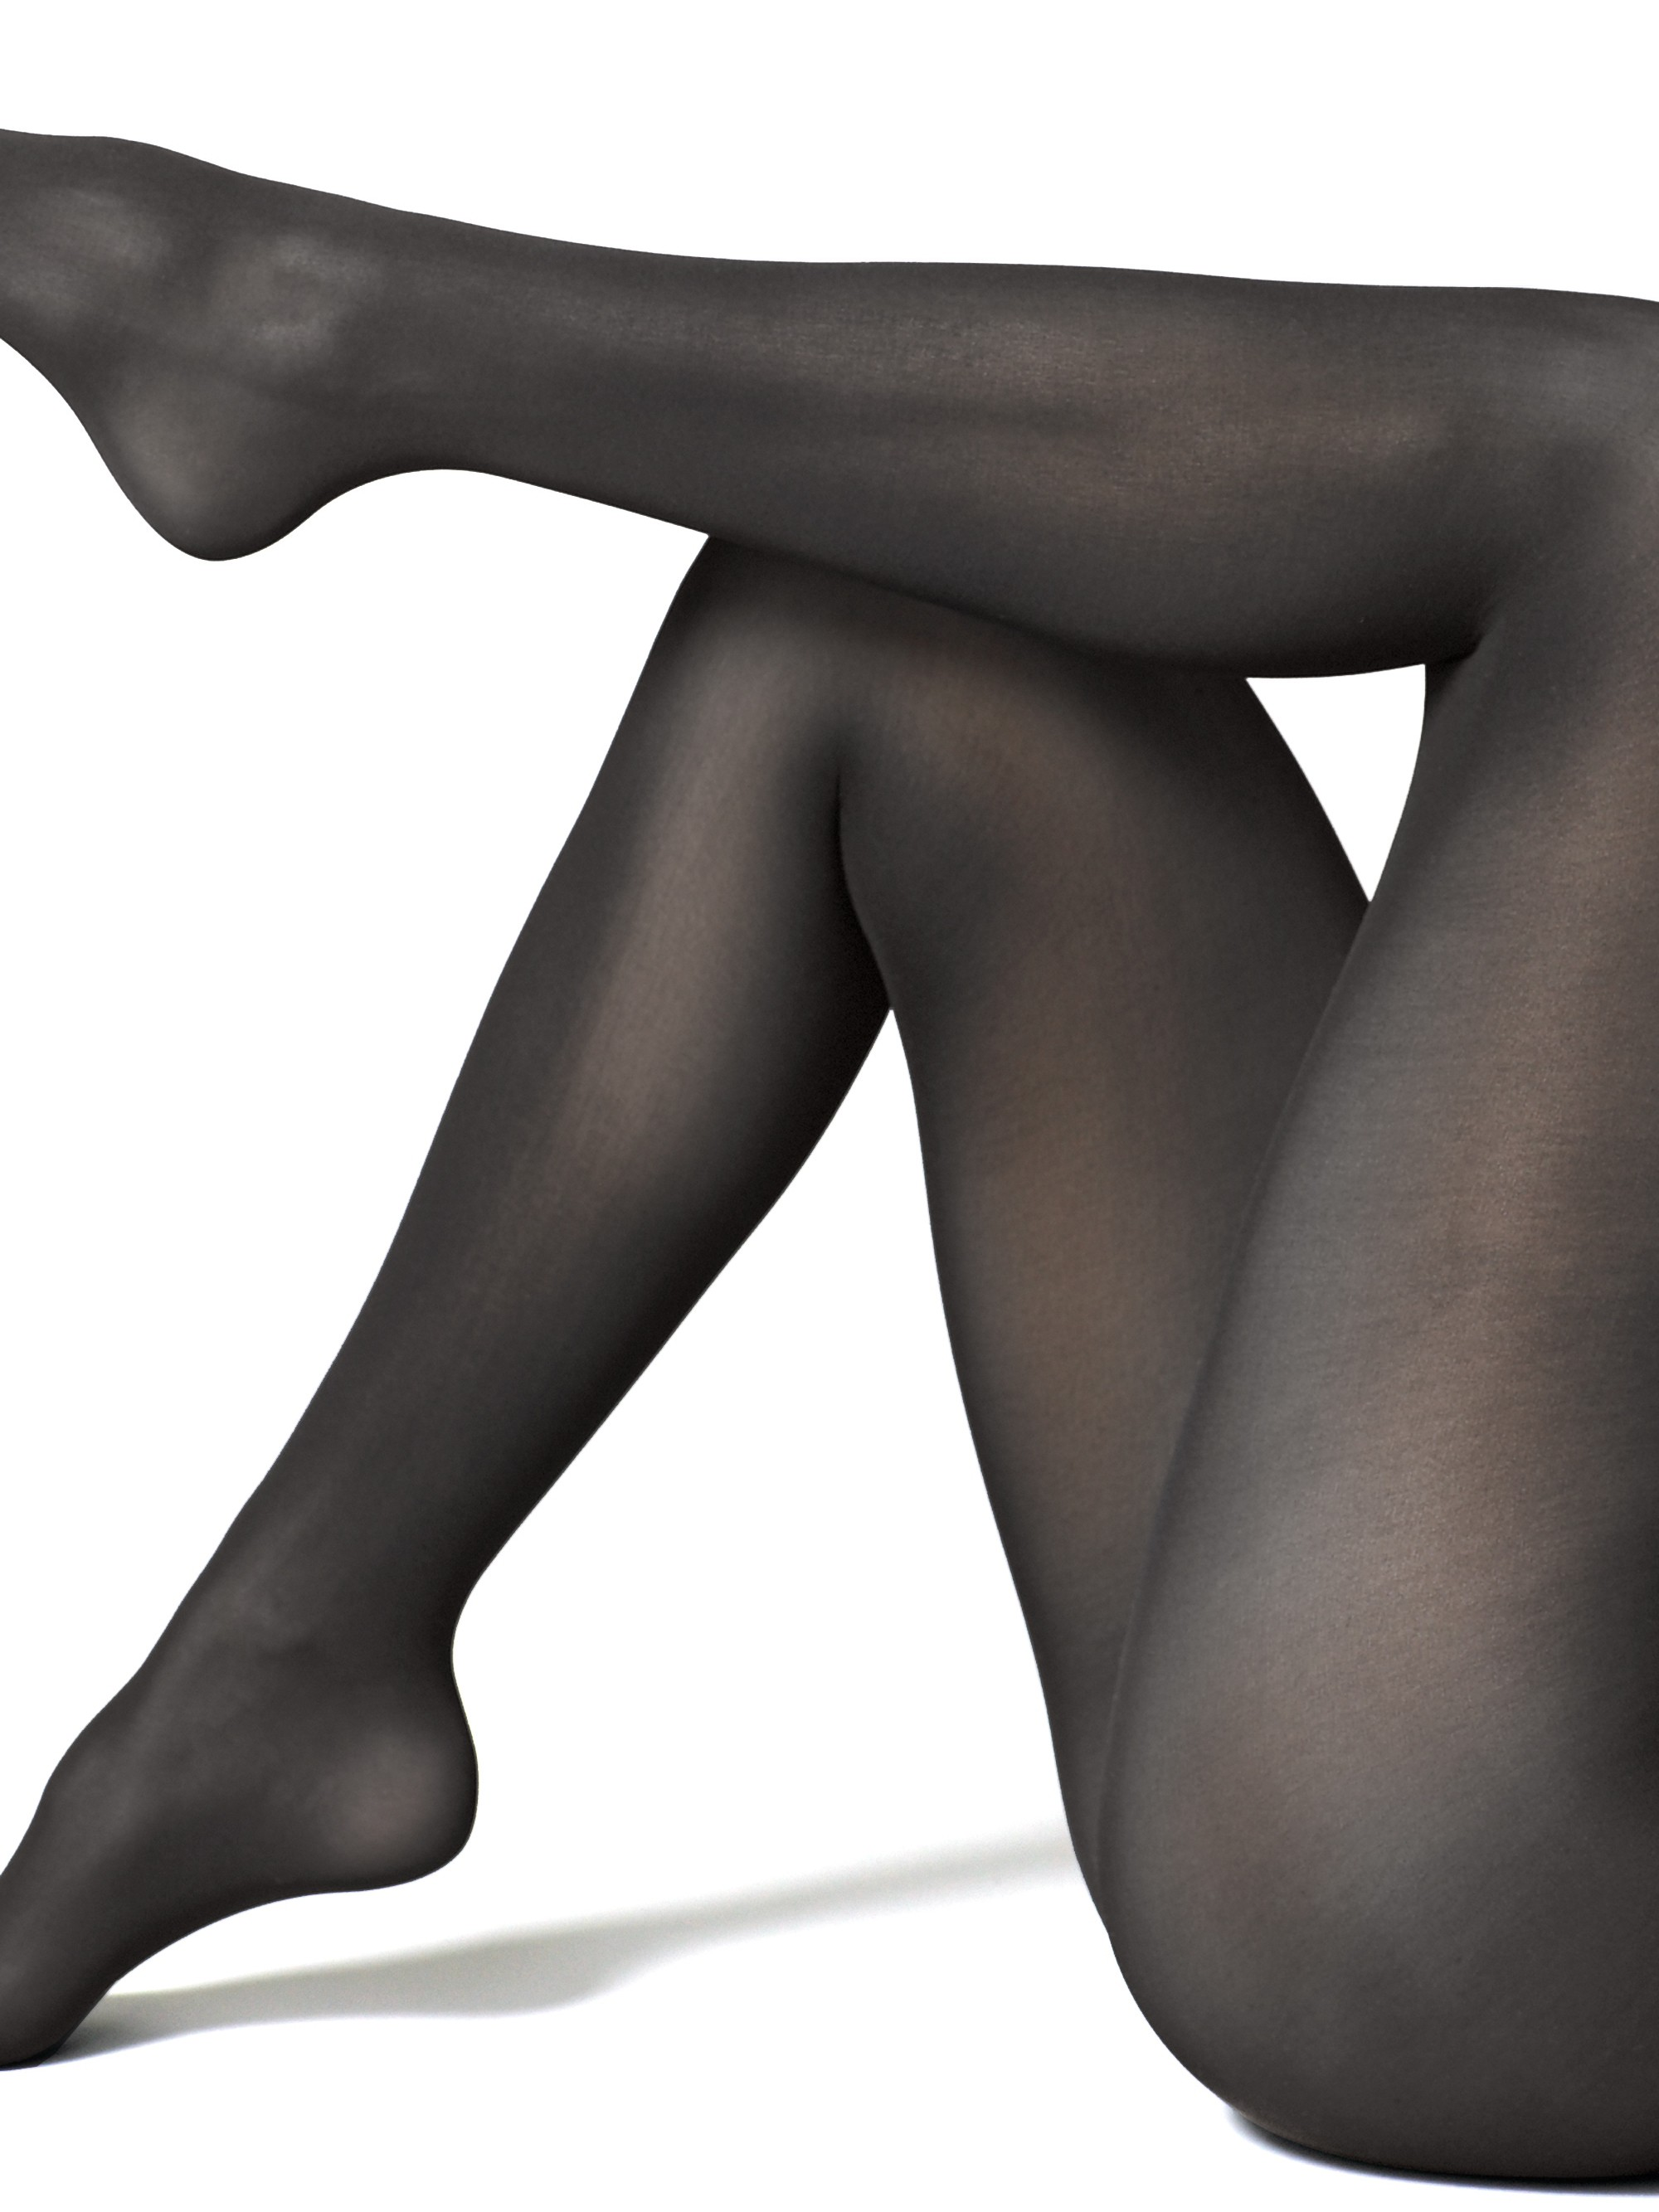 b24e41670dd8d Wolford Velvet De Luxe 50 Tights - Anthracite Xlrg | Products ...